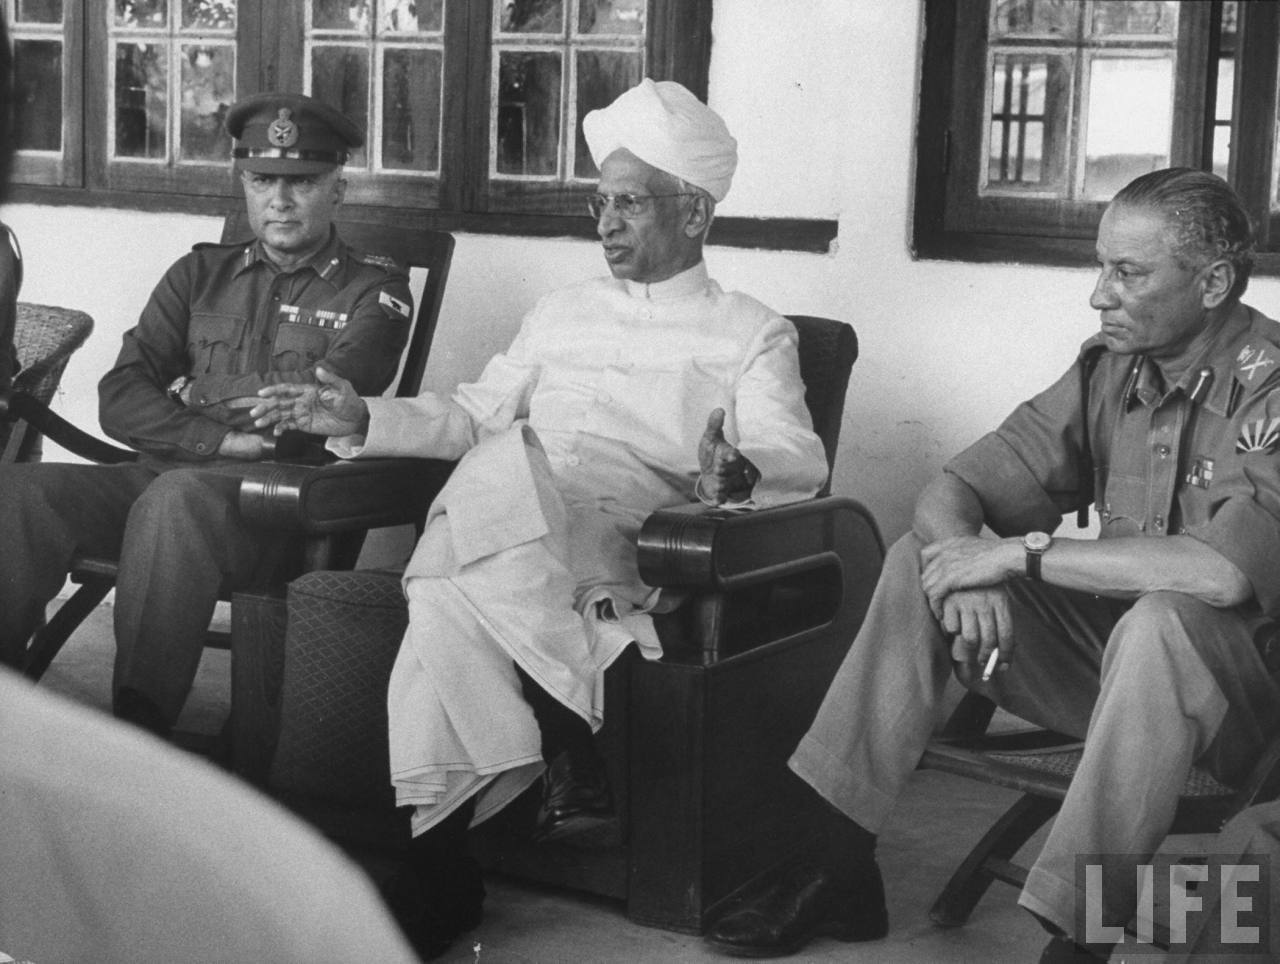 The history of Special Frontier Force-Establishment No. 22: President Radhakrishnan with Officers of Indian Army during the 1962 India-China War.